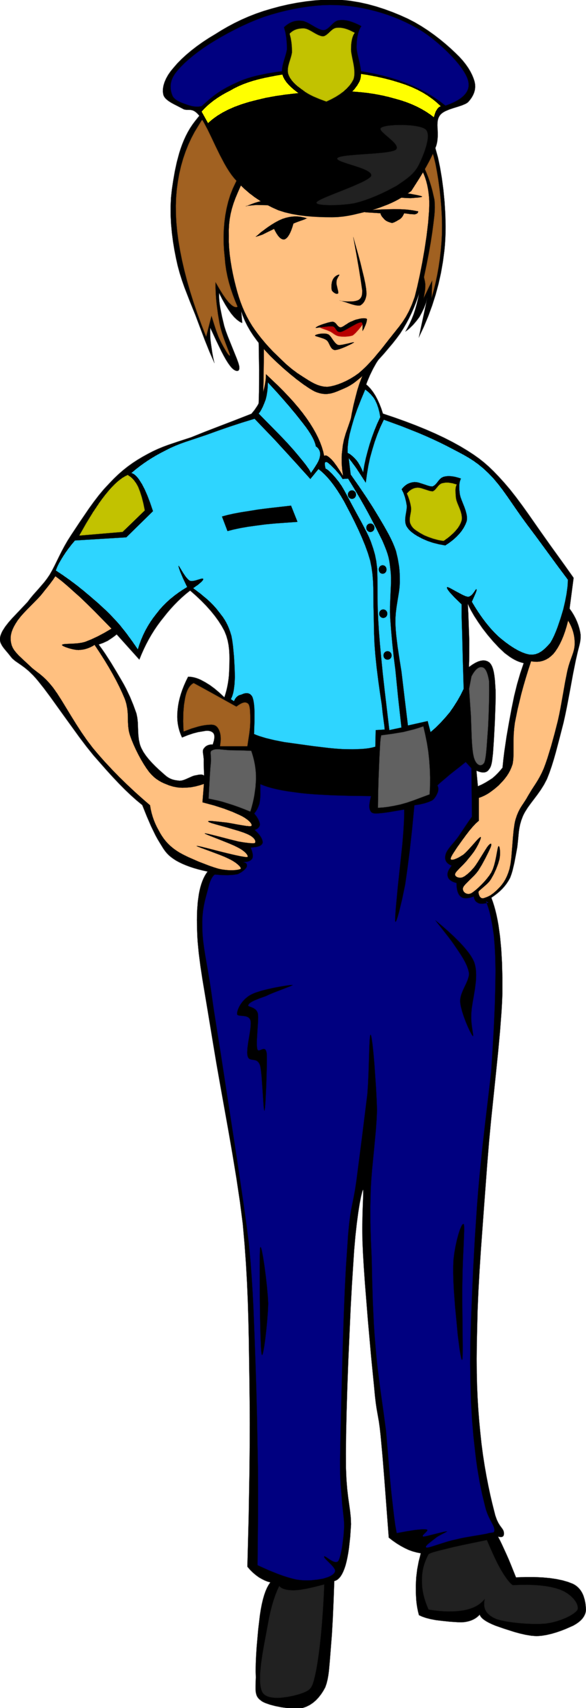 Police banner library free. Patrol clipart patrol officer graphic free